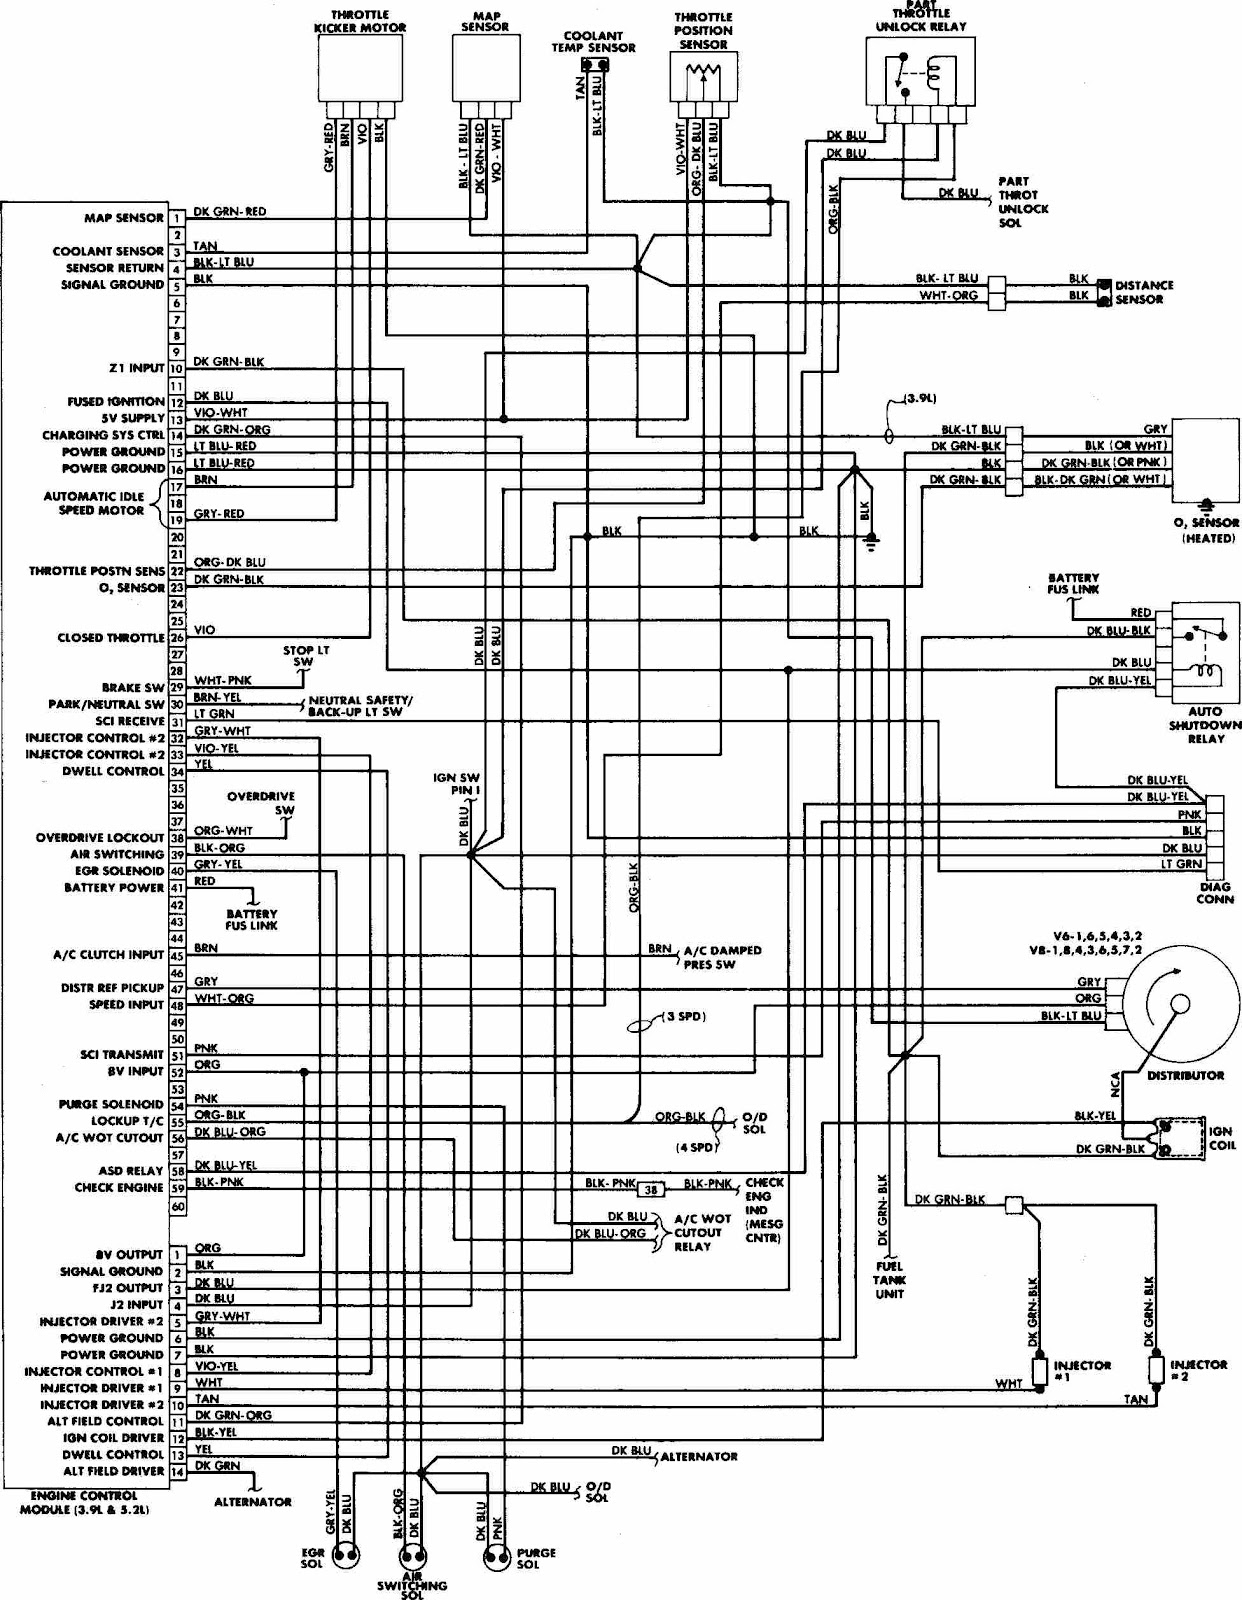 dodge w100 1988 engine control wiring diagram all about wiring diagrams 2011 gmc sierra wiring diagram [ 1242 x 1600 Pixel ]